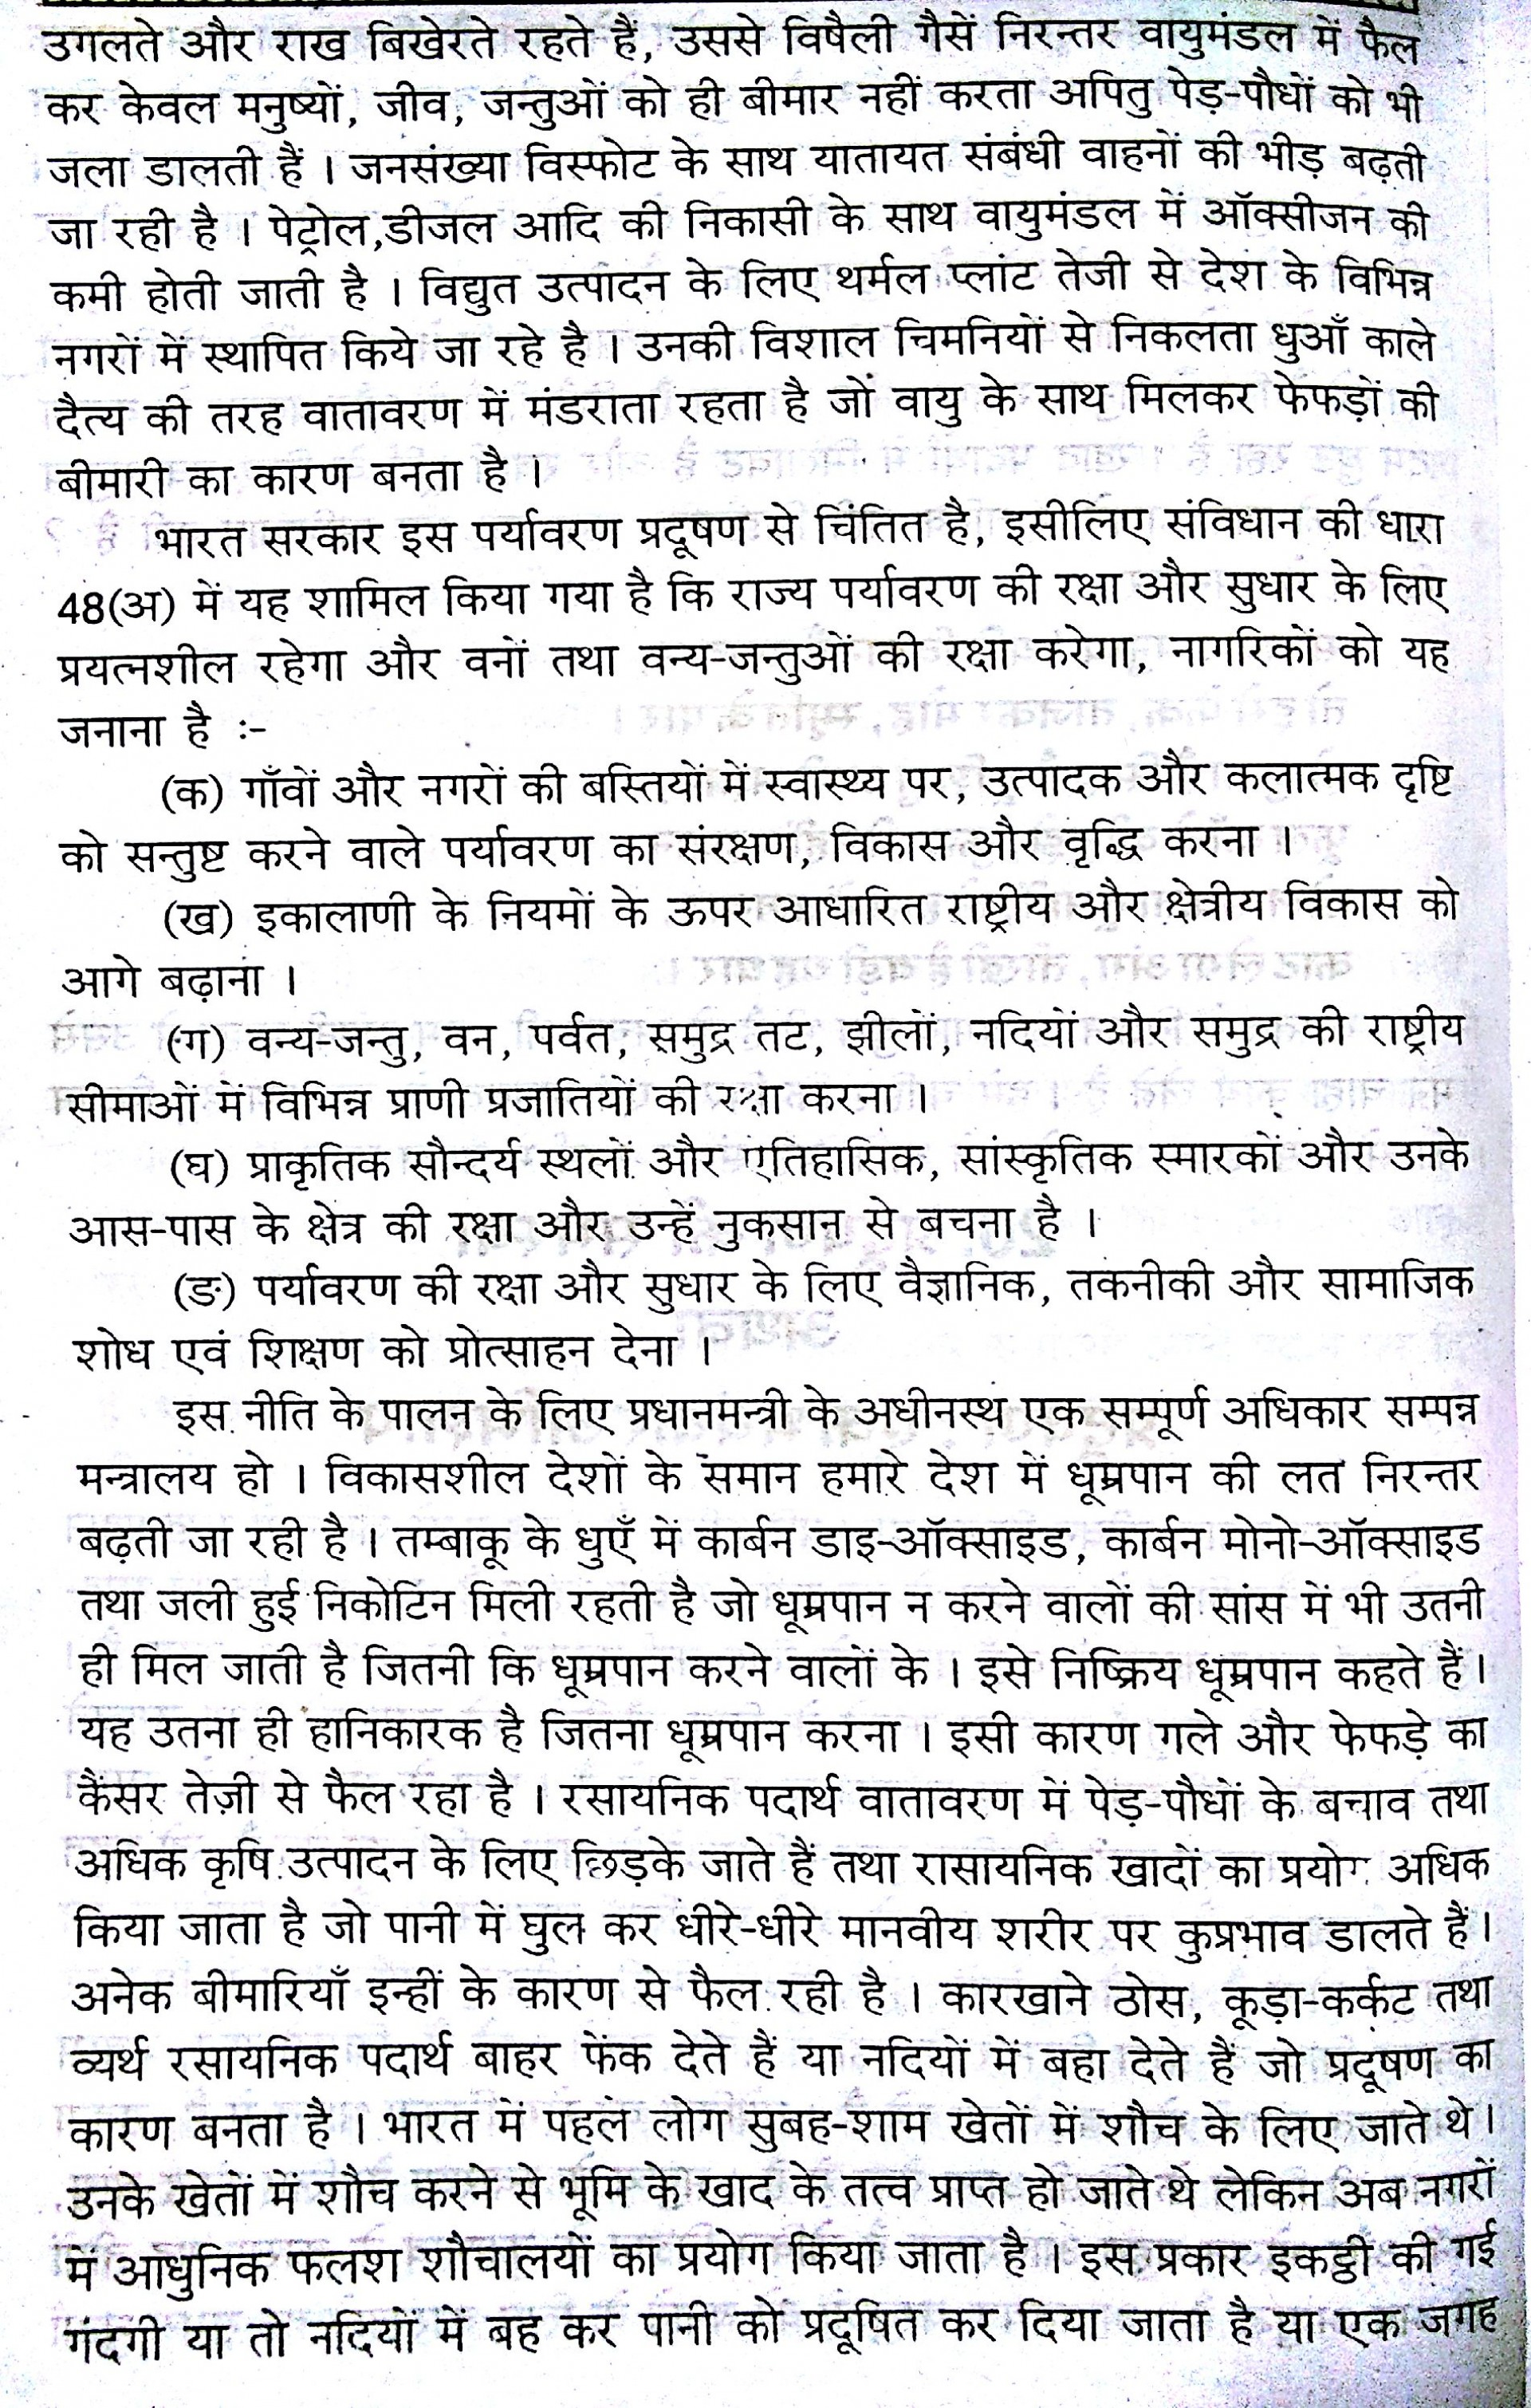 004 Essay Example Kqxjwi3 Global Terrorism In Outstanding Hindi 1920